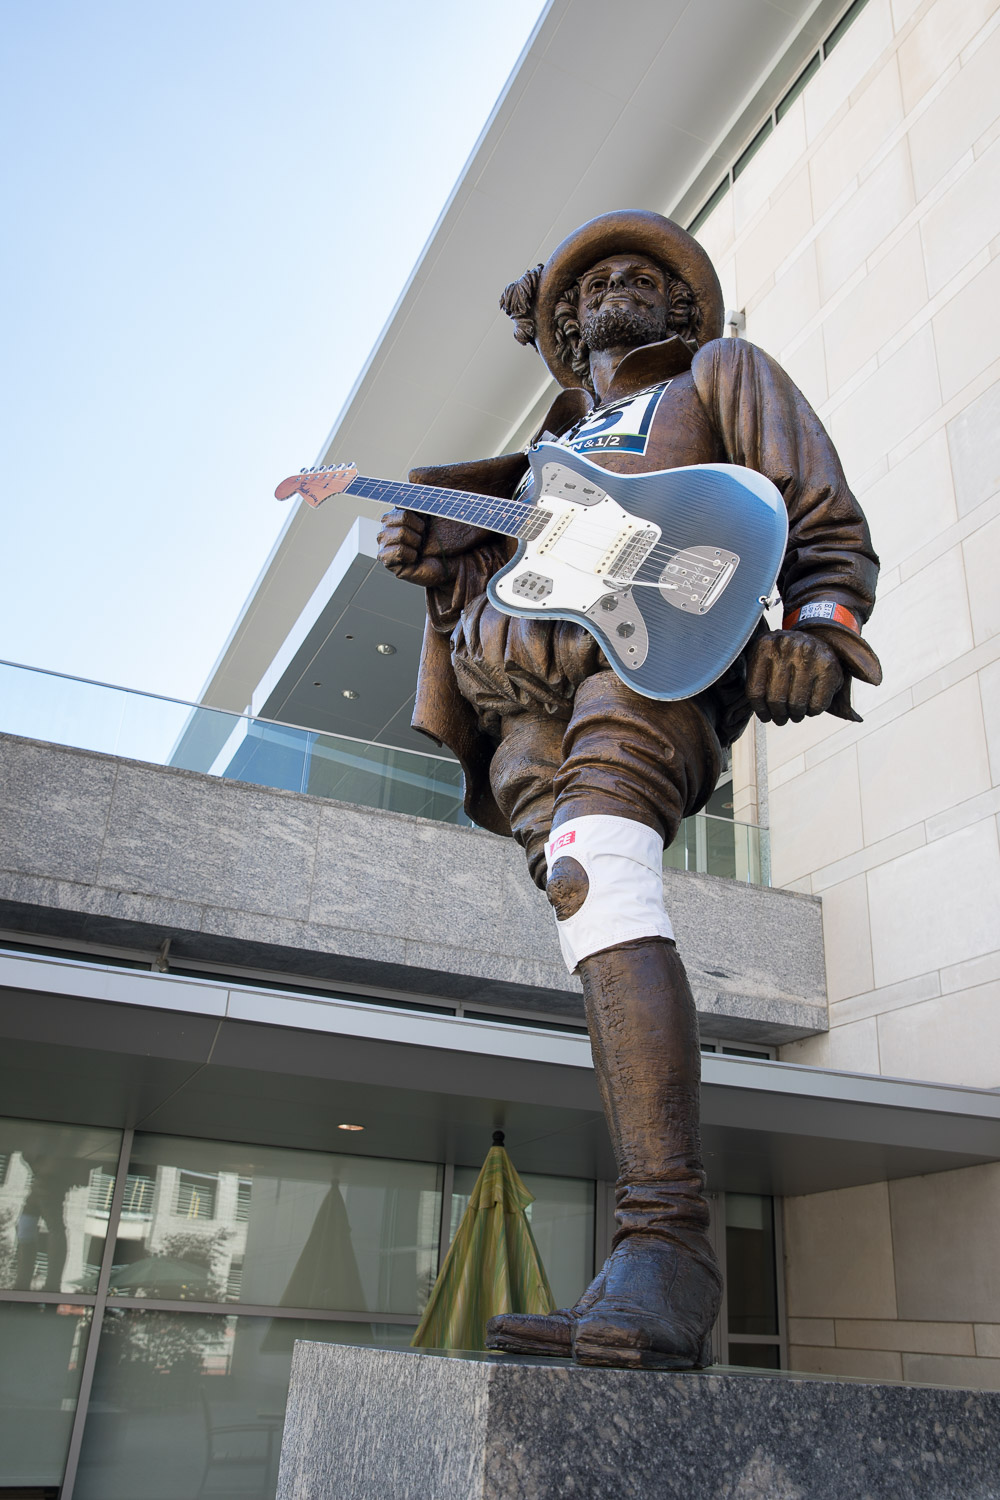 Rock 'n' roll Raleigh - Sir Walter Raleigh decked out in running gear for the big marathon event